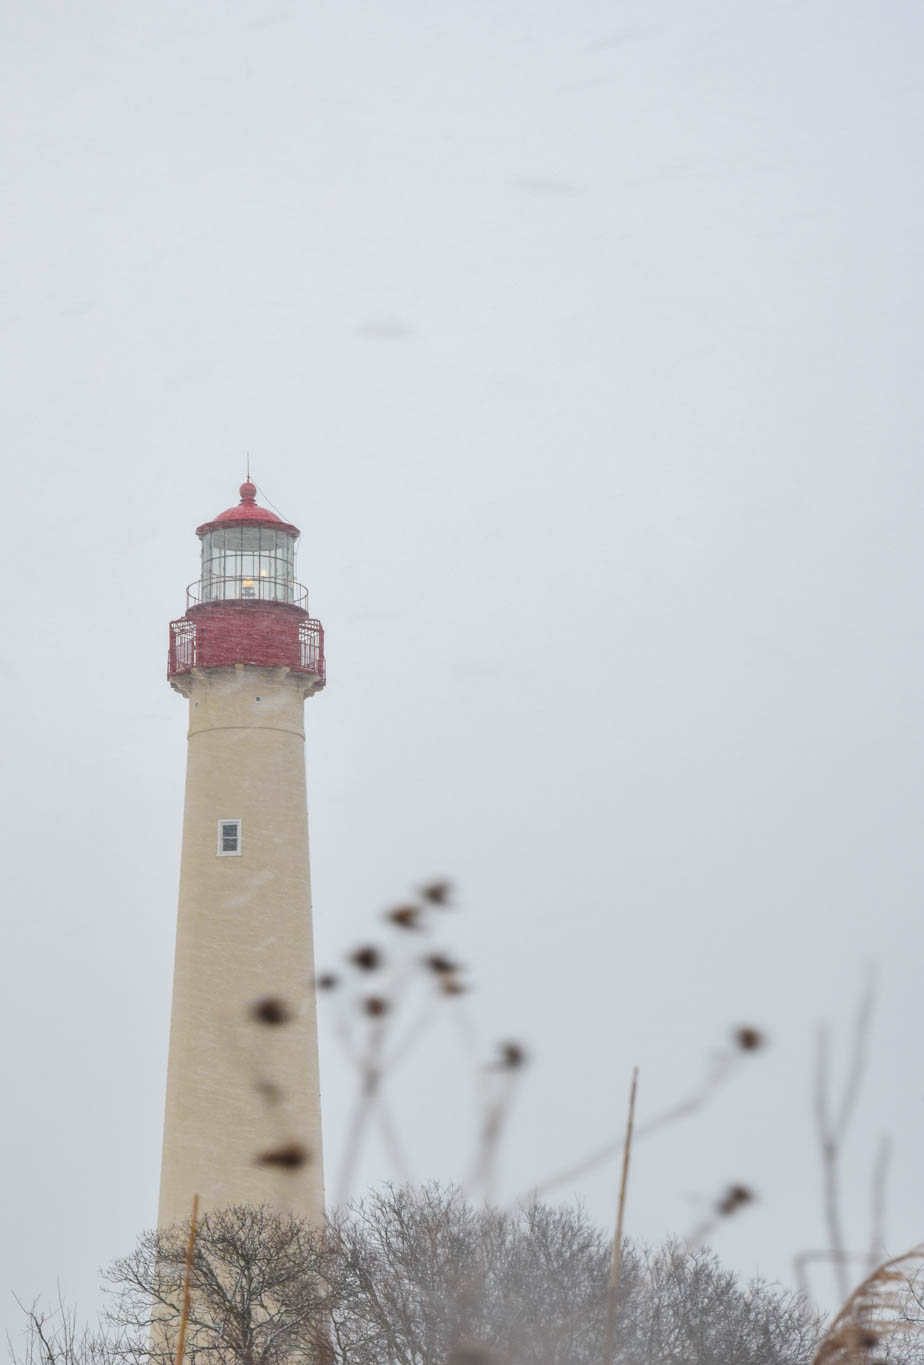 Cape May Lighthouse with snow and ice falling